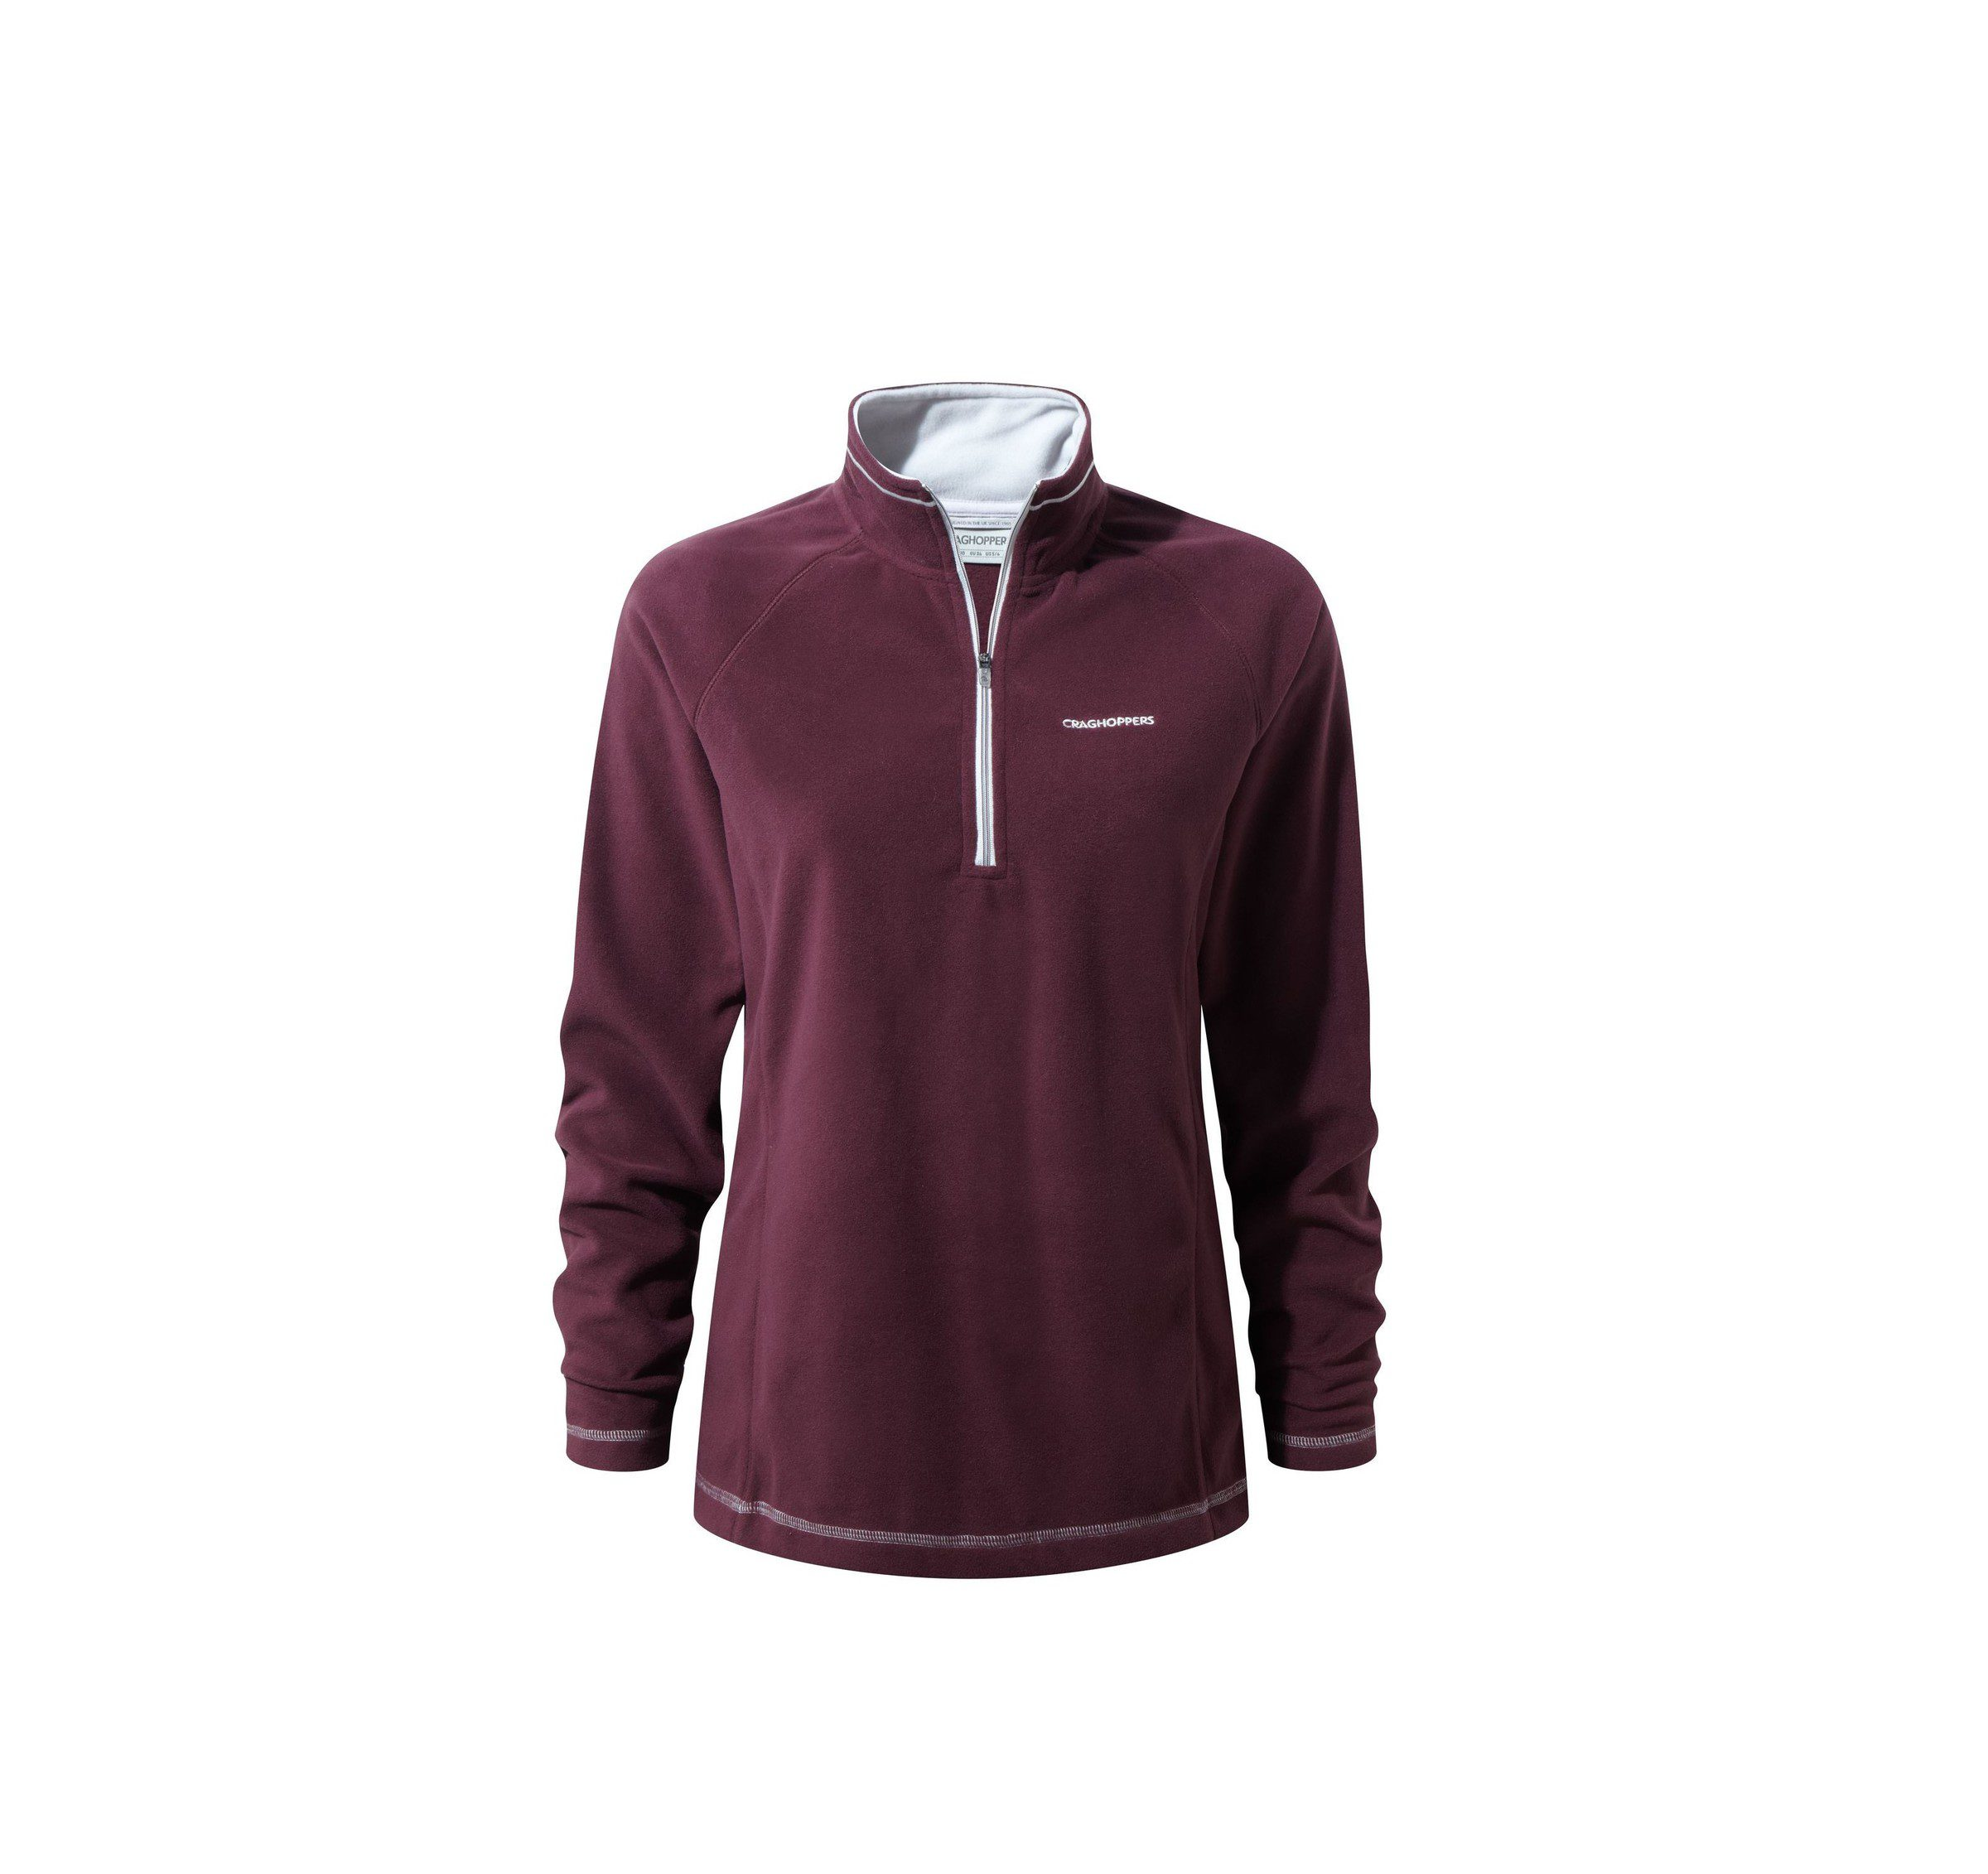 Craghoppers Seline Half Zip Fleece - Winterberry